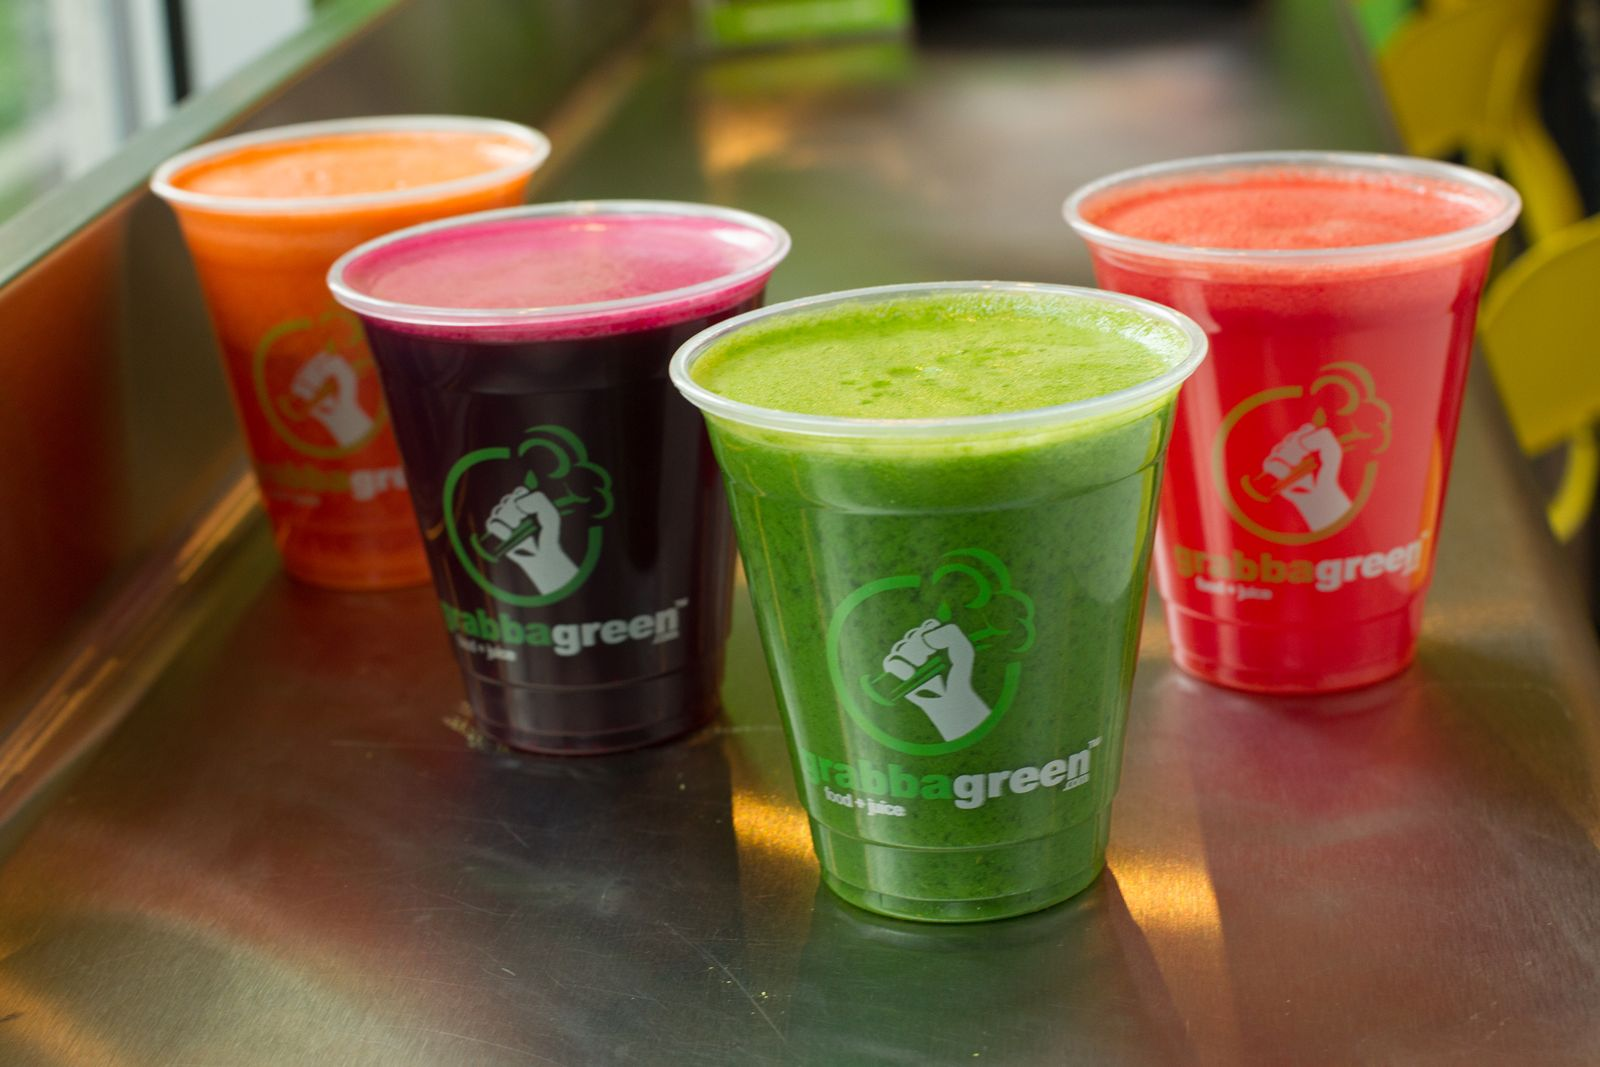 Popular Healthy Fast Food Restaurant, Grabbagreen Opens in Addison, TX